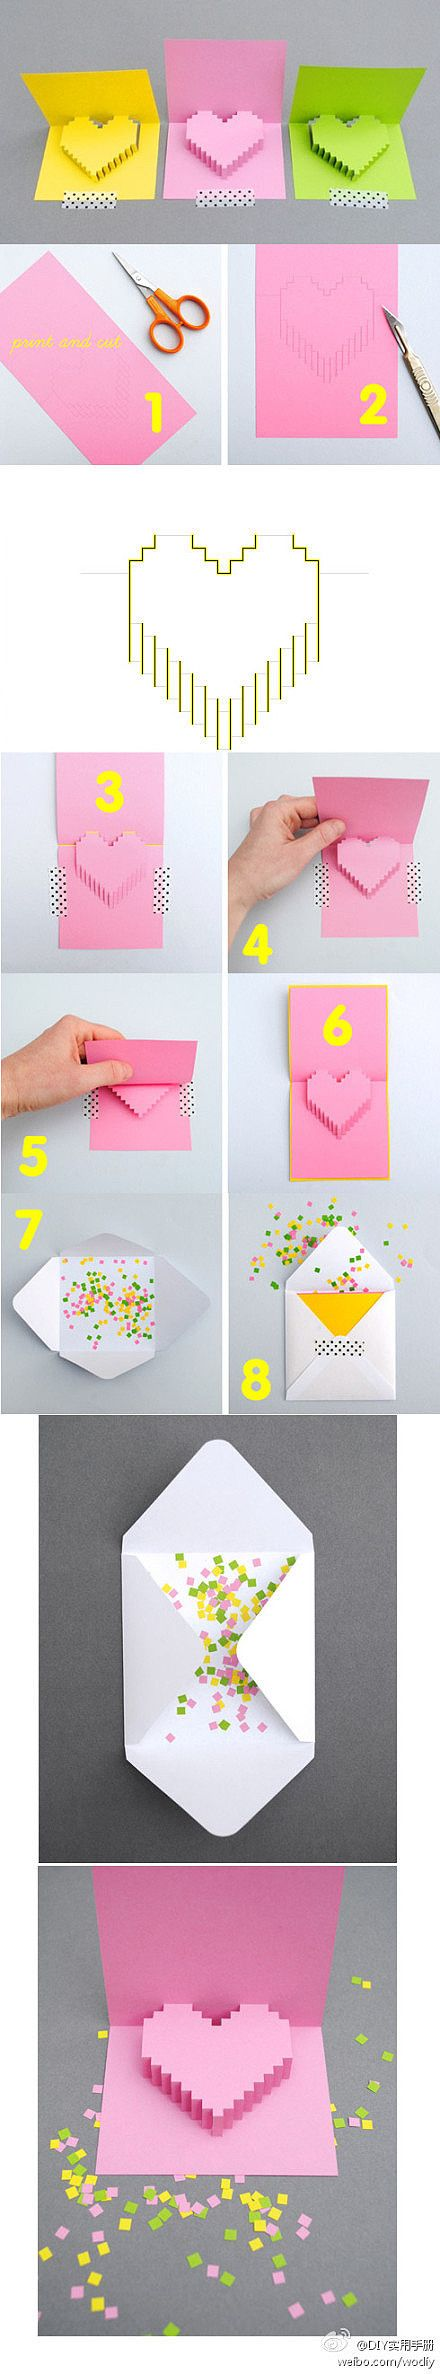 Art And Craft Ideas For Making Greeting Cards Part - 50: This Fun U0027How To Diyu0027 Uses A Paper Card, Envelope, Confetti And Washi  Masking Tape. This Is A Fun Idea For Love Letters, Snail Mail And As ...